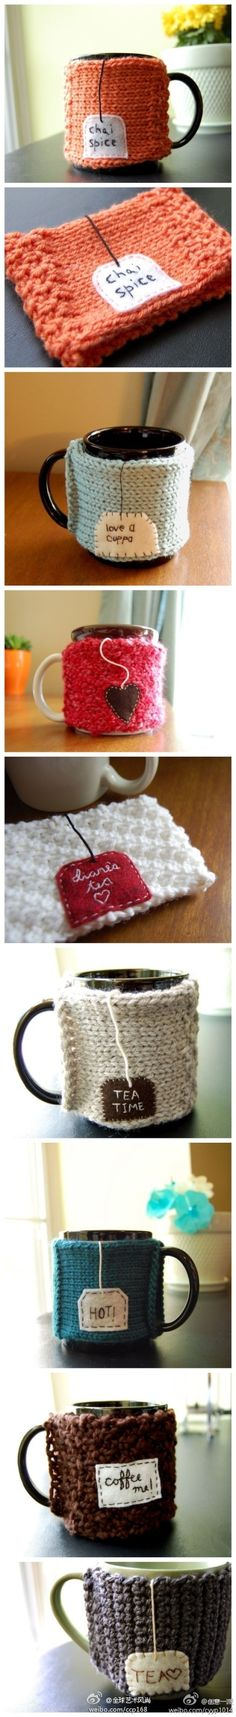 My coffee has to be dressed up too! :) #diy #homemade #crafts #ideas #coffee